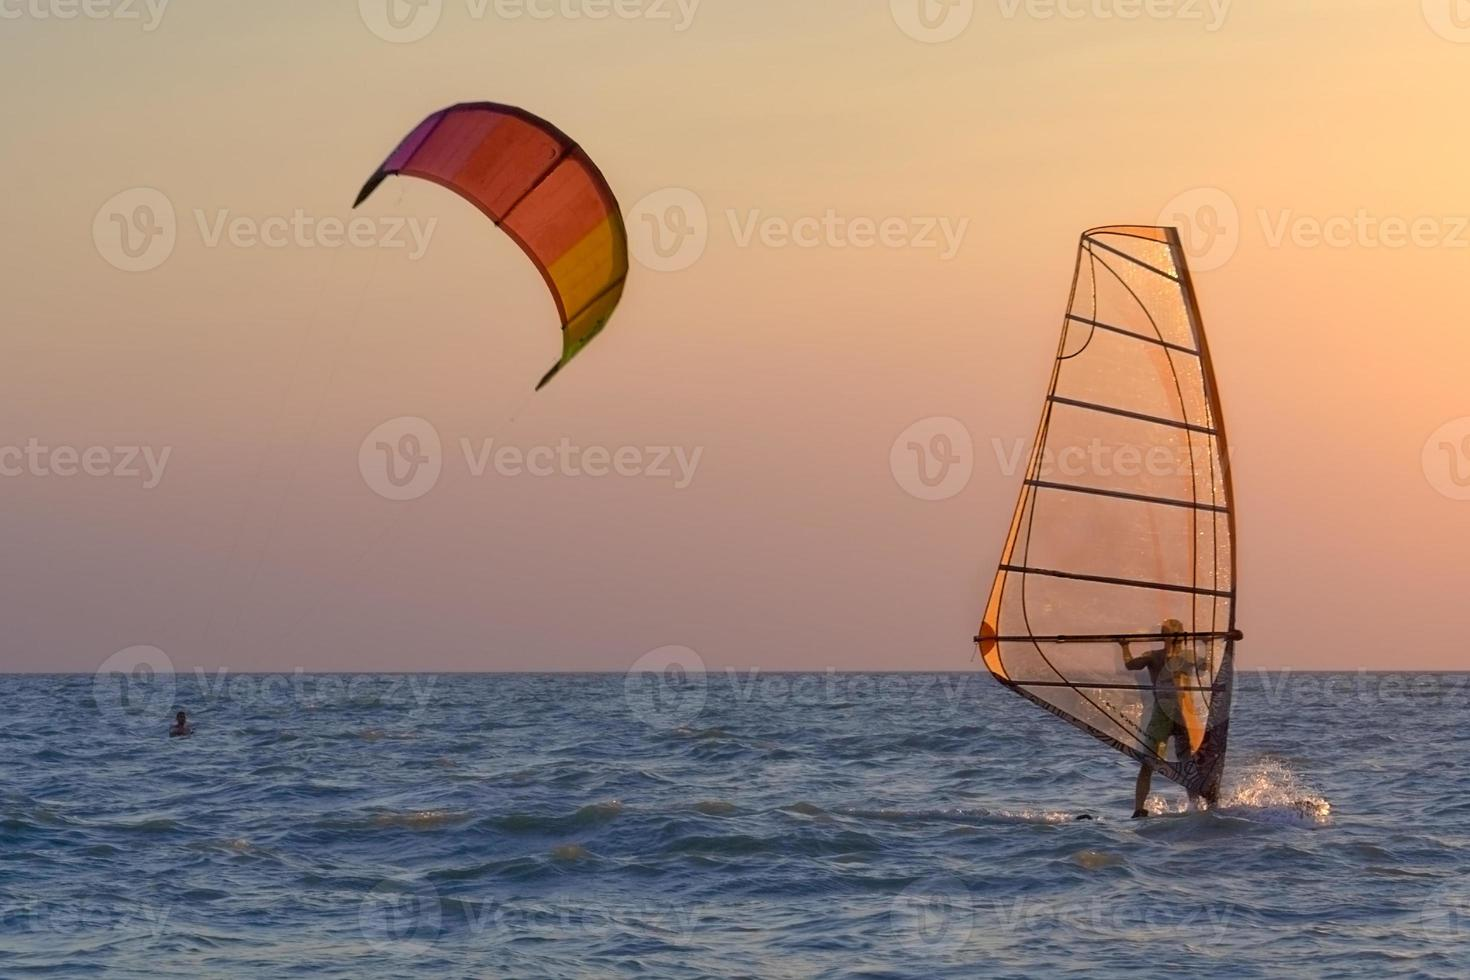 Kite-surfing and windsurfing at the sunset photo